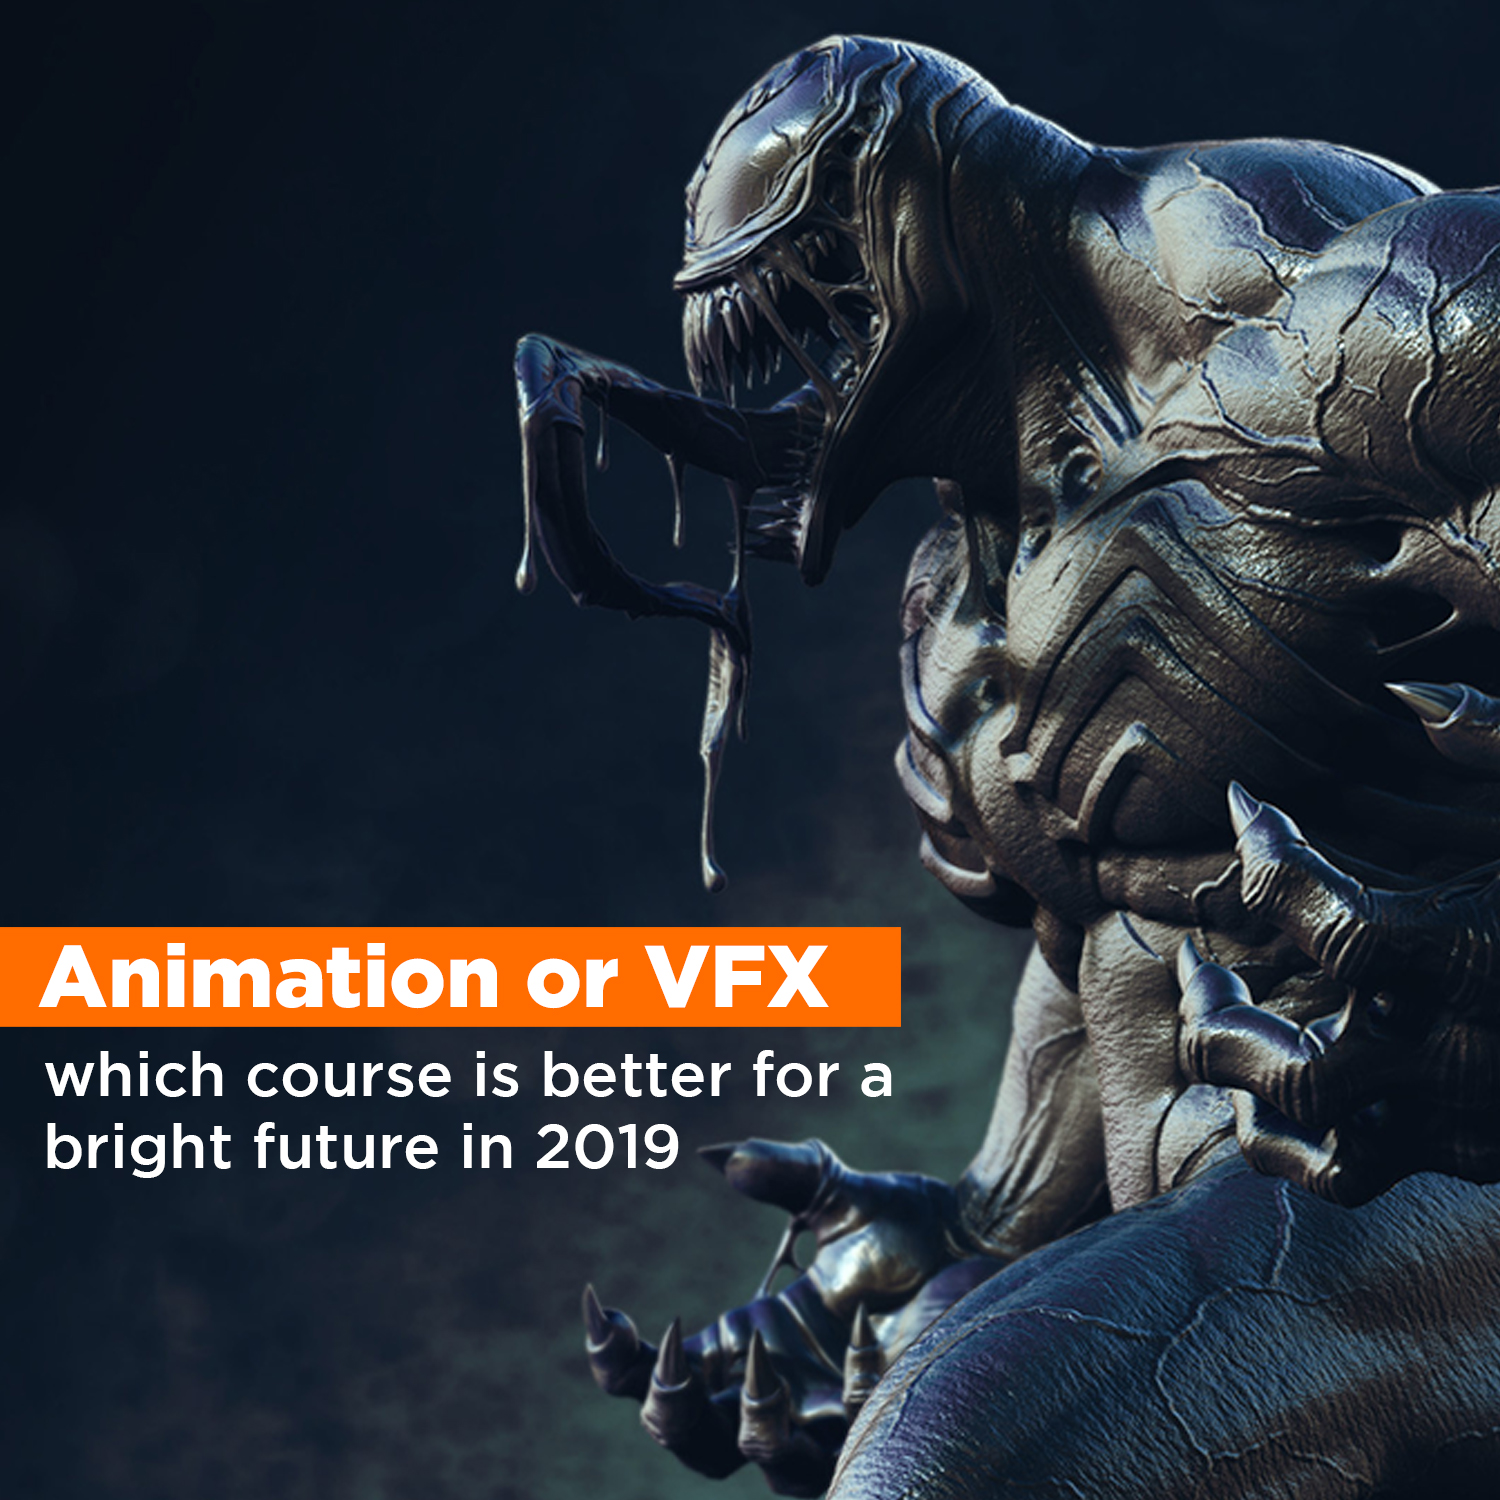 Animation or VFX which course is better for a bright future in 2019